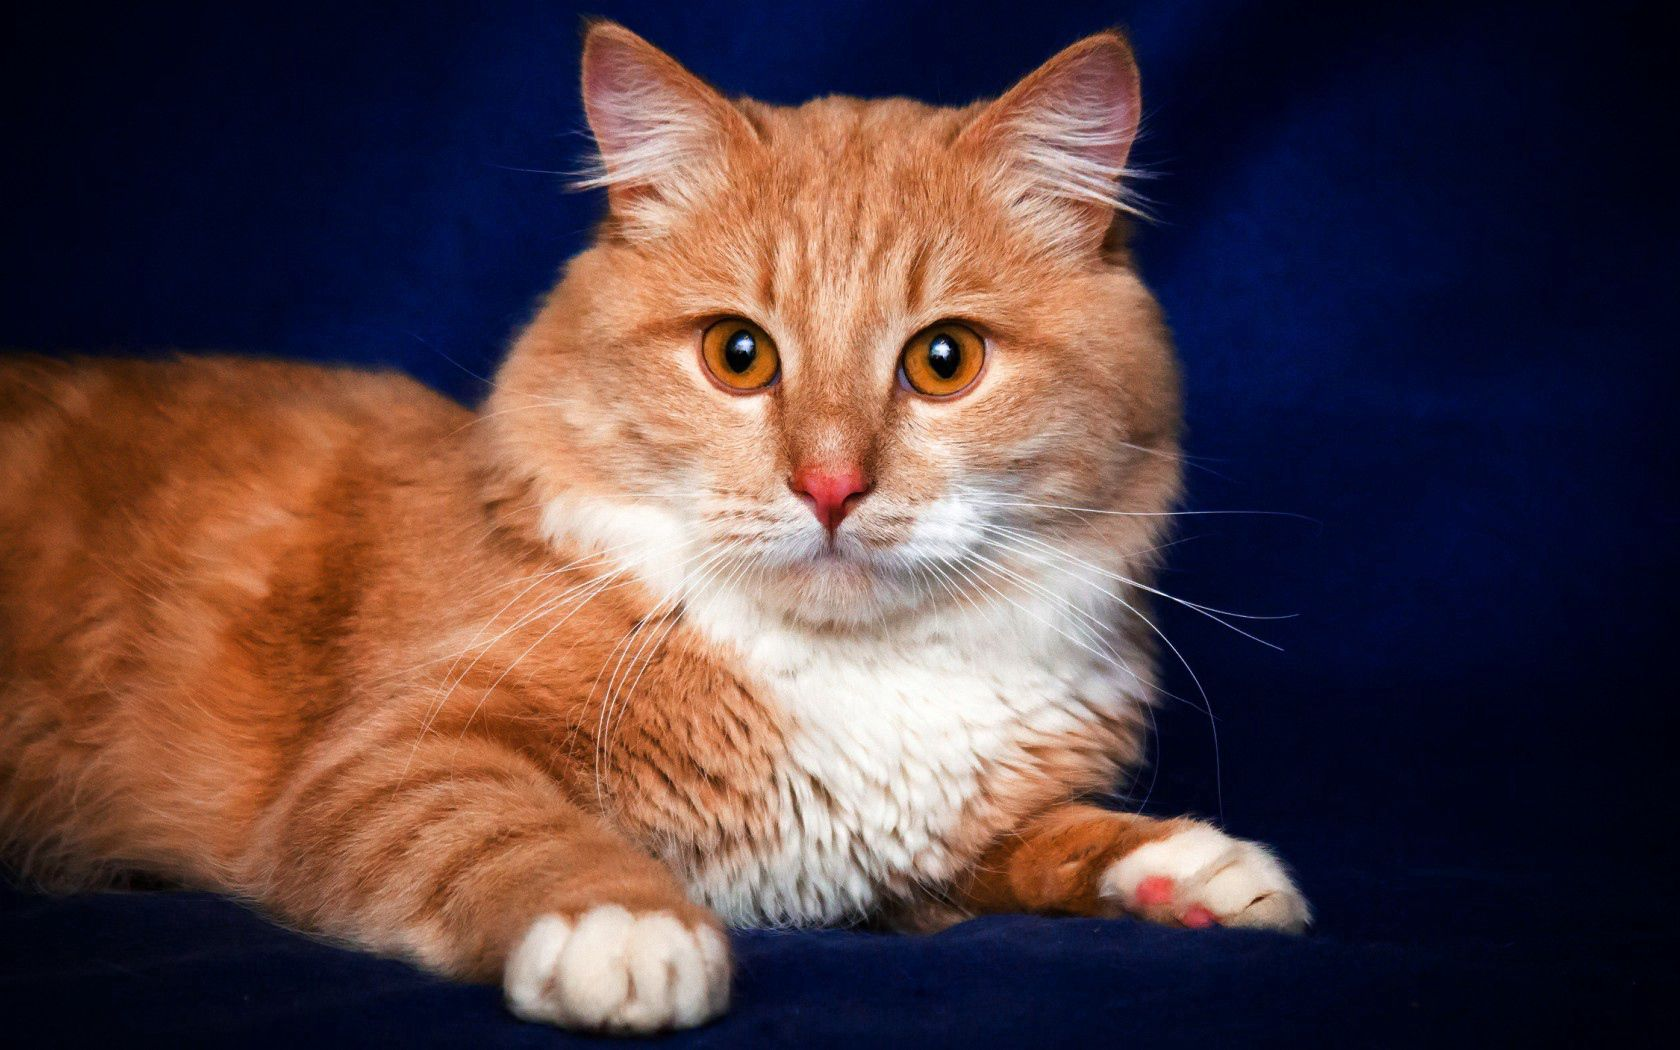 71712 download wallpaper Animals, Cat, Redhead, Muzzle, Sight, Opinion screensavers and pictures for free